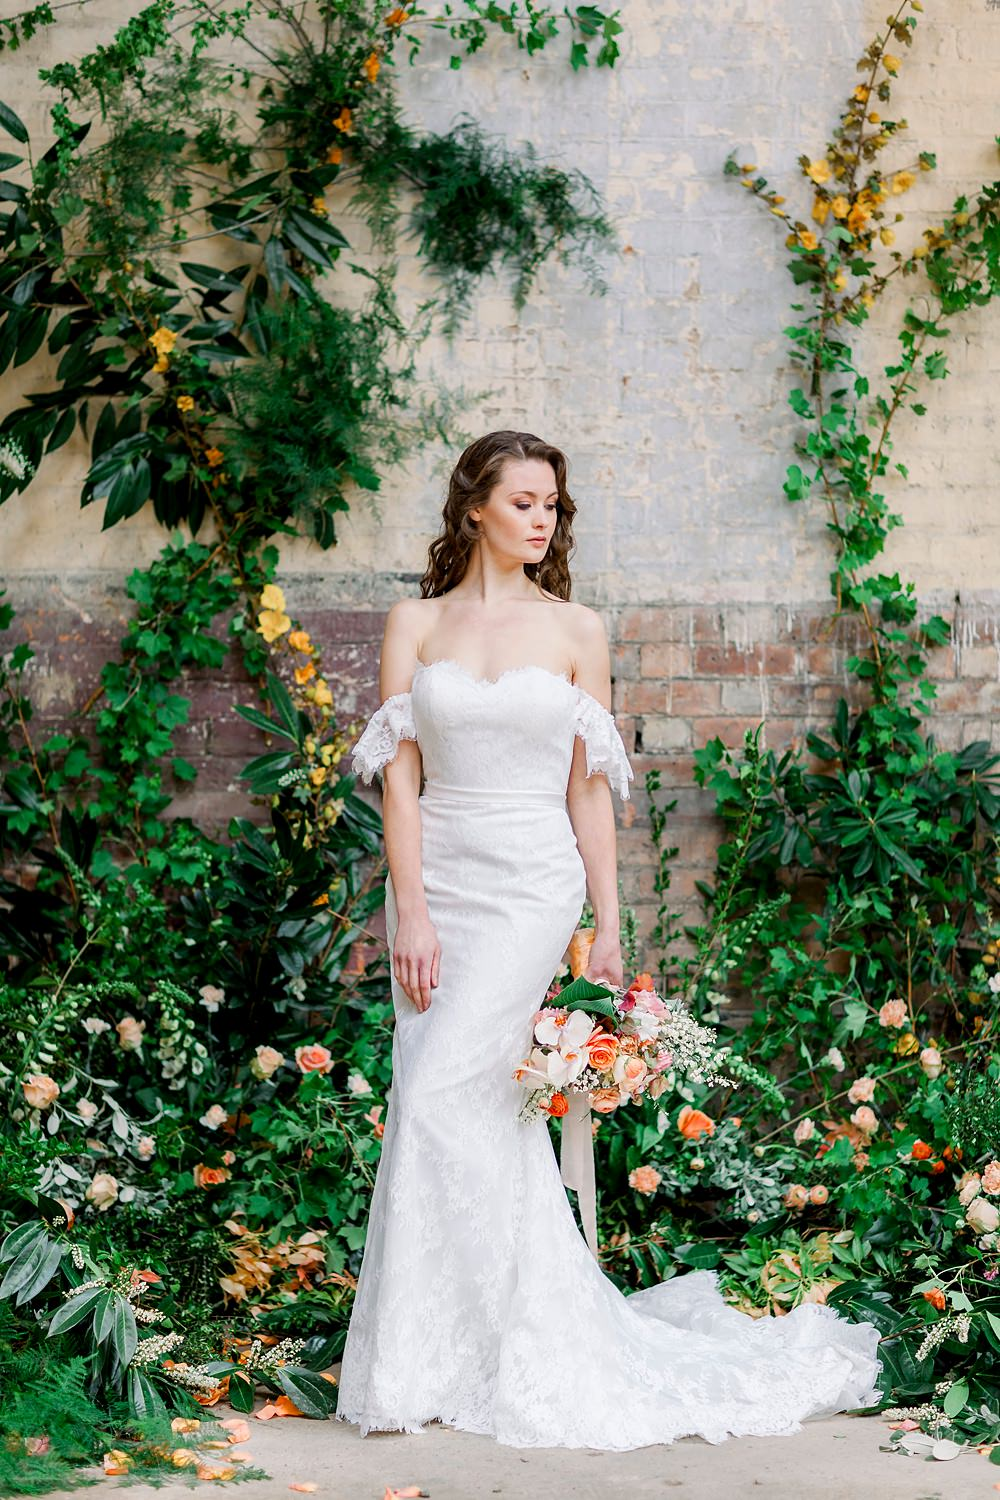 Backdrop Greenery Foliage Wall Installation Flowers Dress Gown Bride Bridal Stelfox Bride Lace Off Shoulder Bardot Fit Flare Natural Boho Industrial Wedding Ideas Jo Bradbury Photography